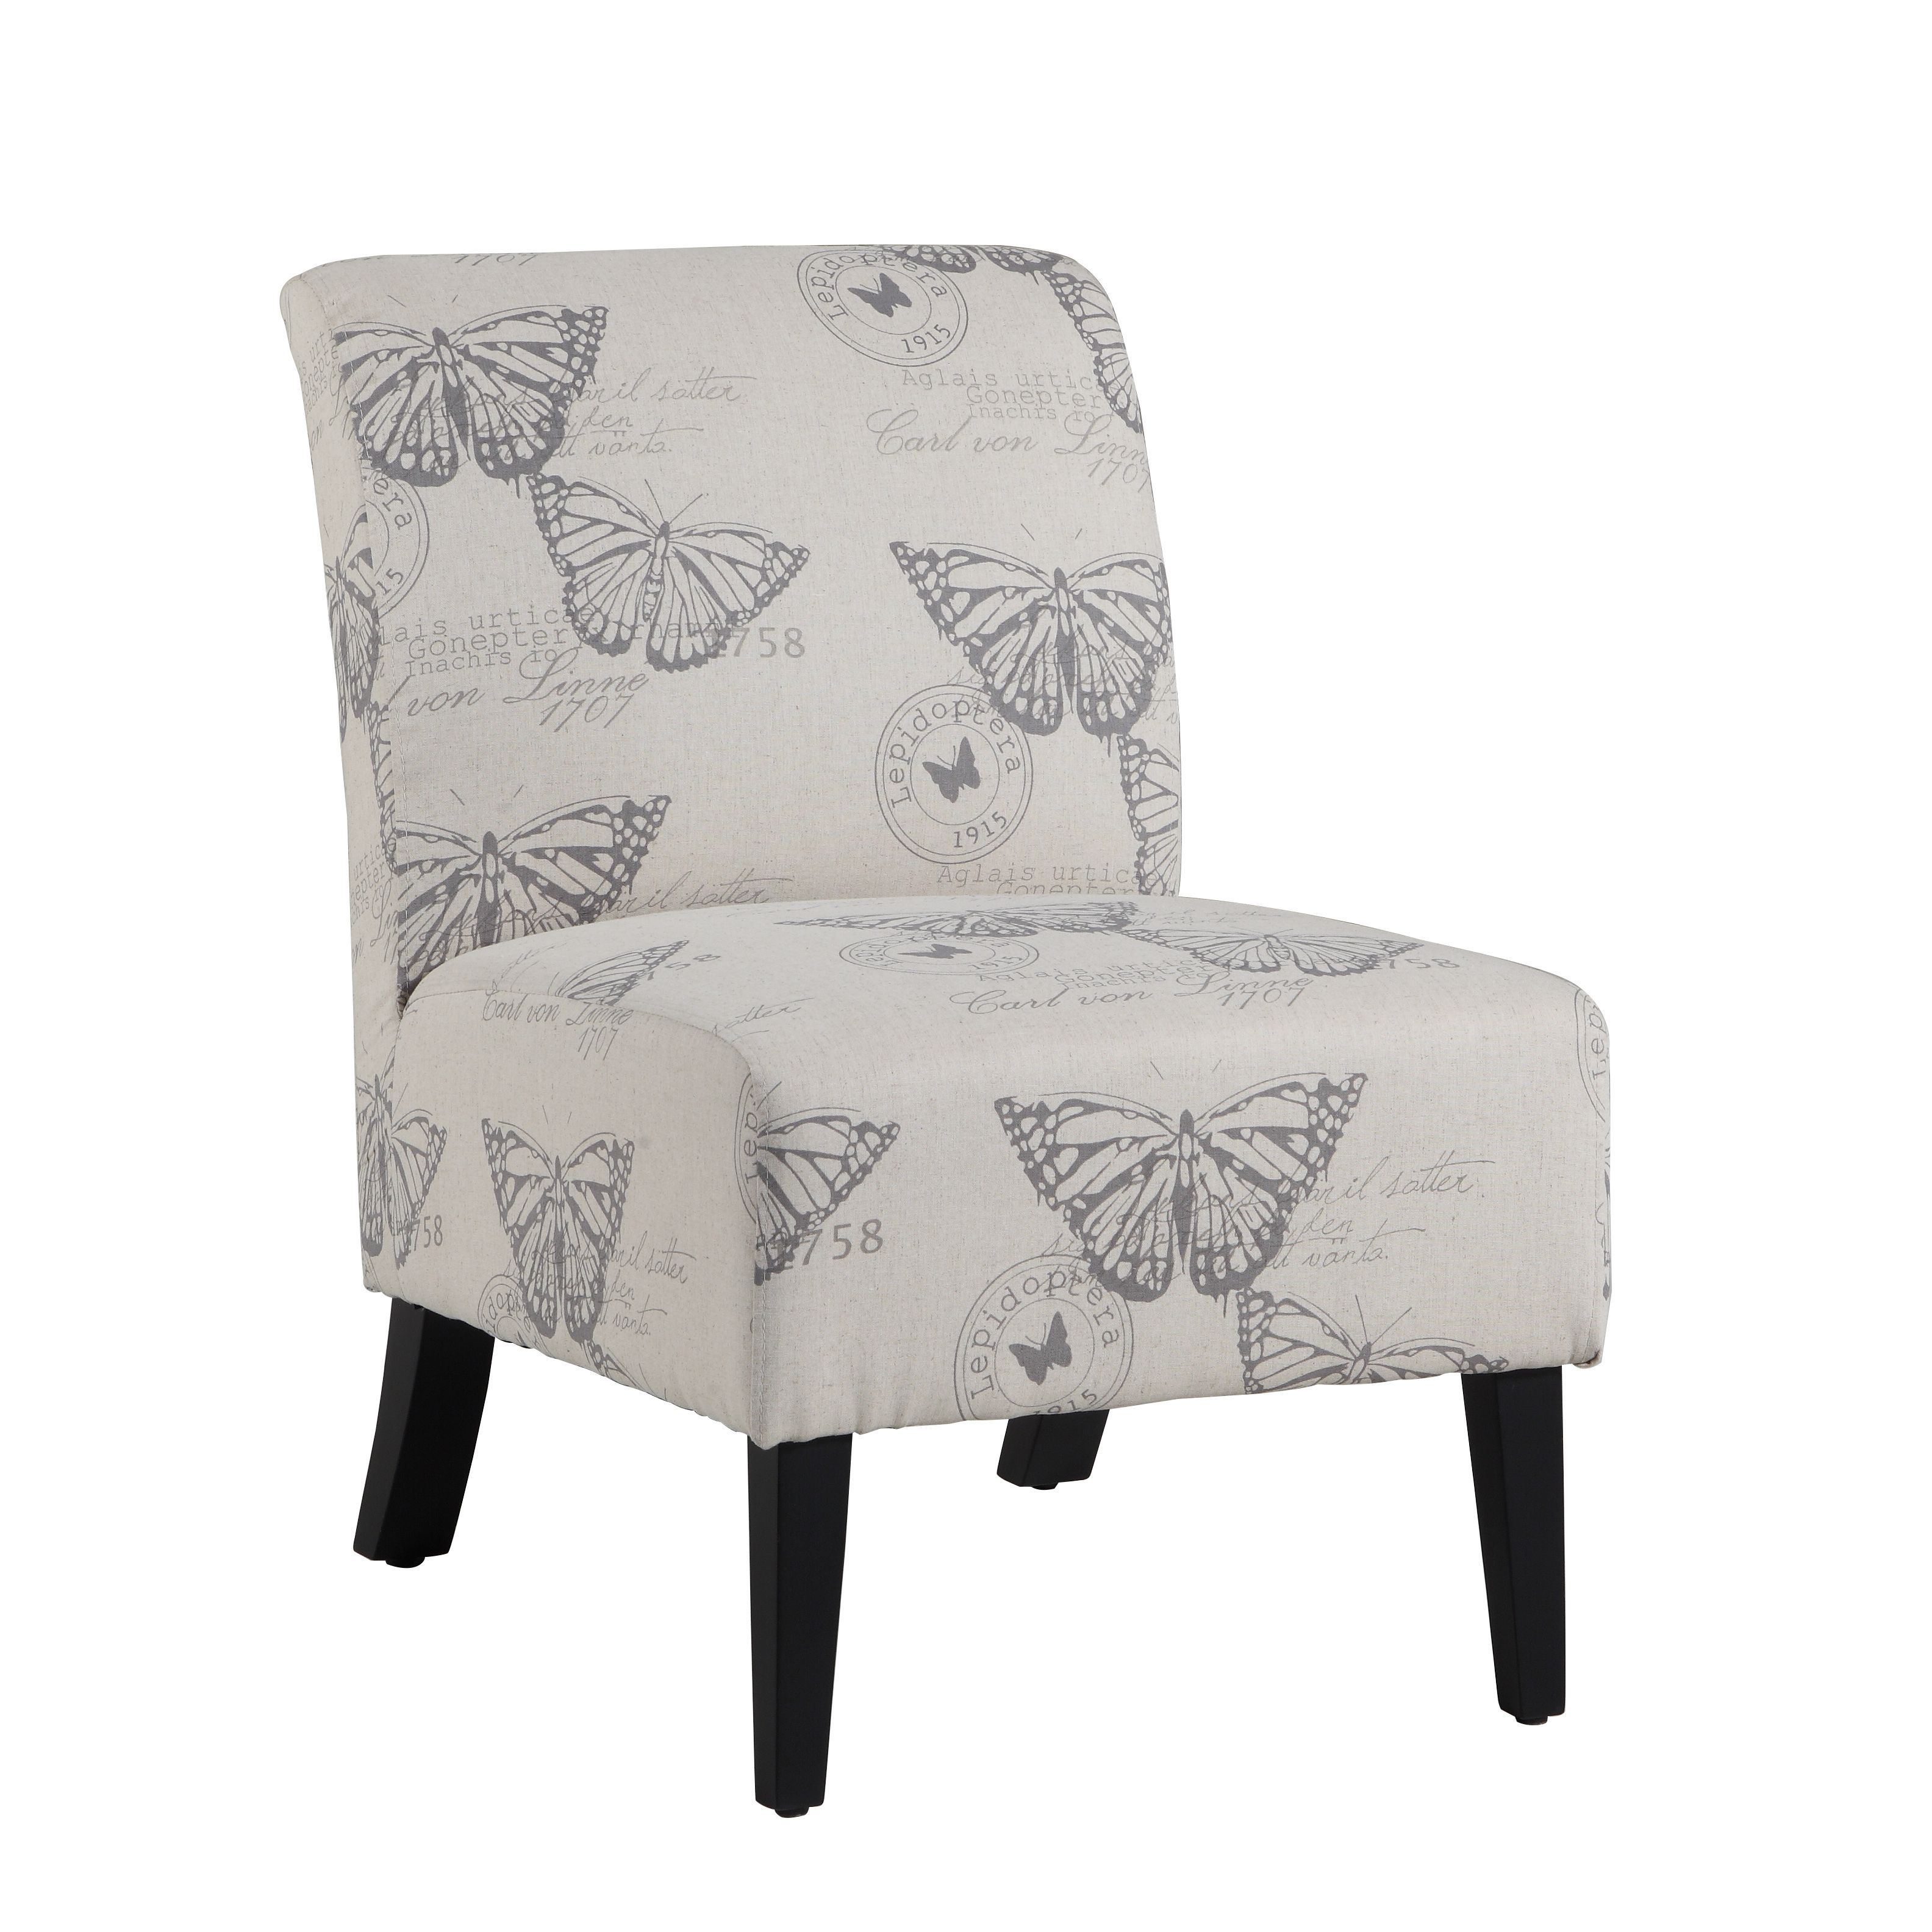 of w com shipping back garden today n wood button espresso dsigns free chair azure home dining legs upholstery product and straight set blue kacey sole upholstered buttons chairs centro straightback a overstock fabric